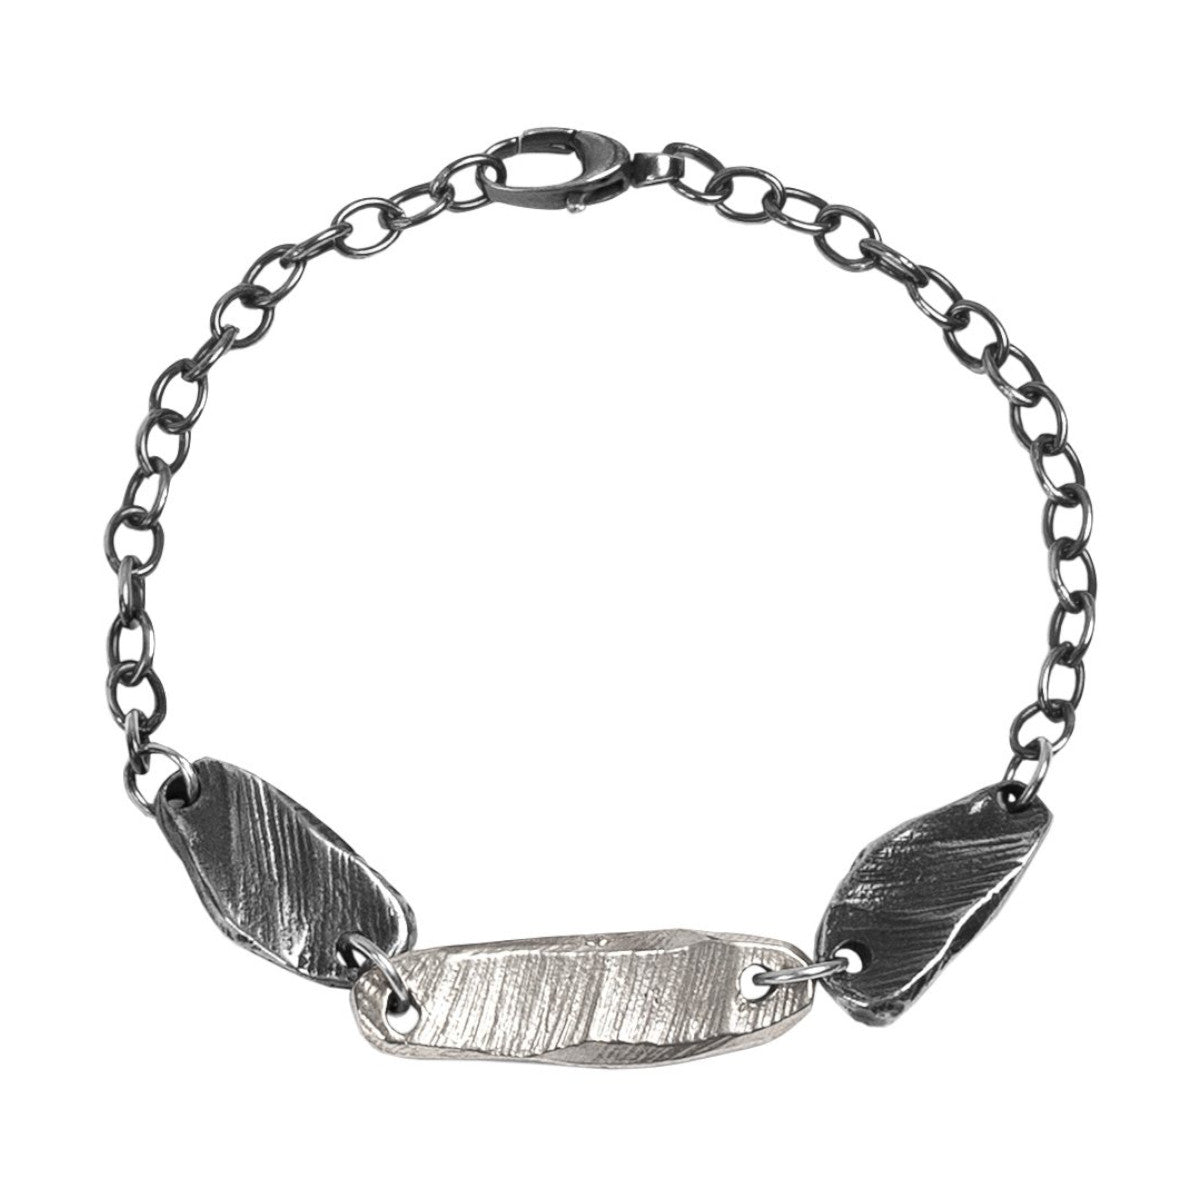 Mixed Metal Bracelet Sterling Silver